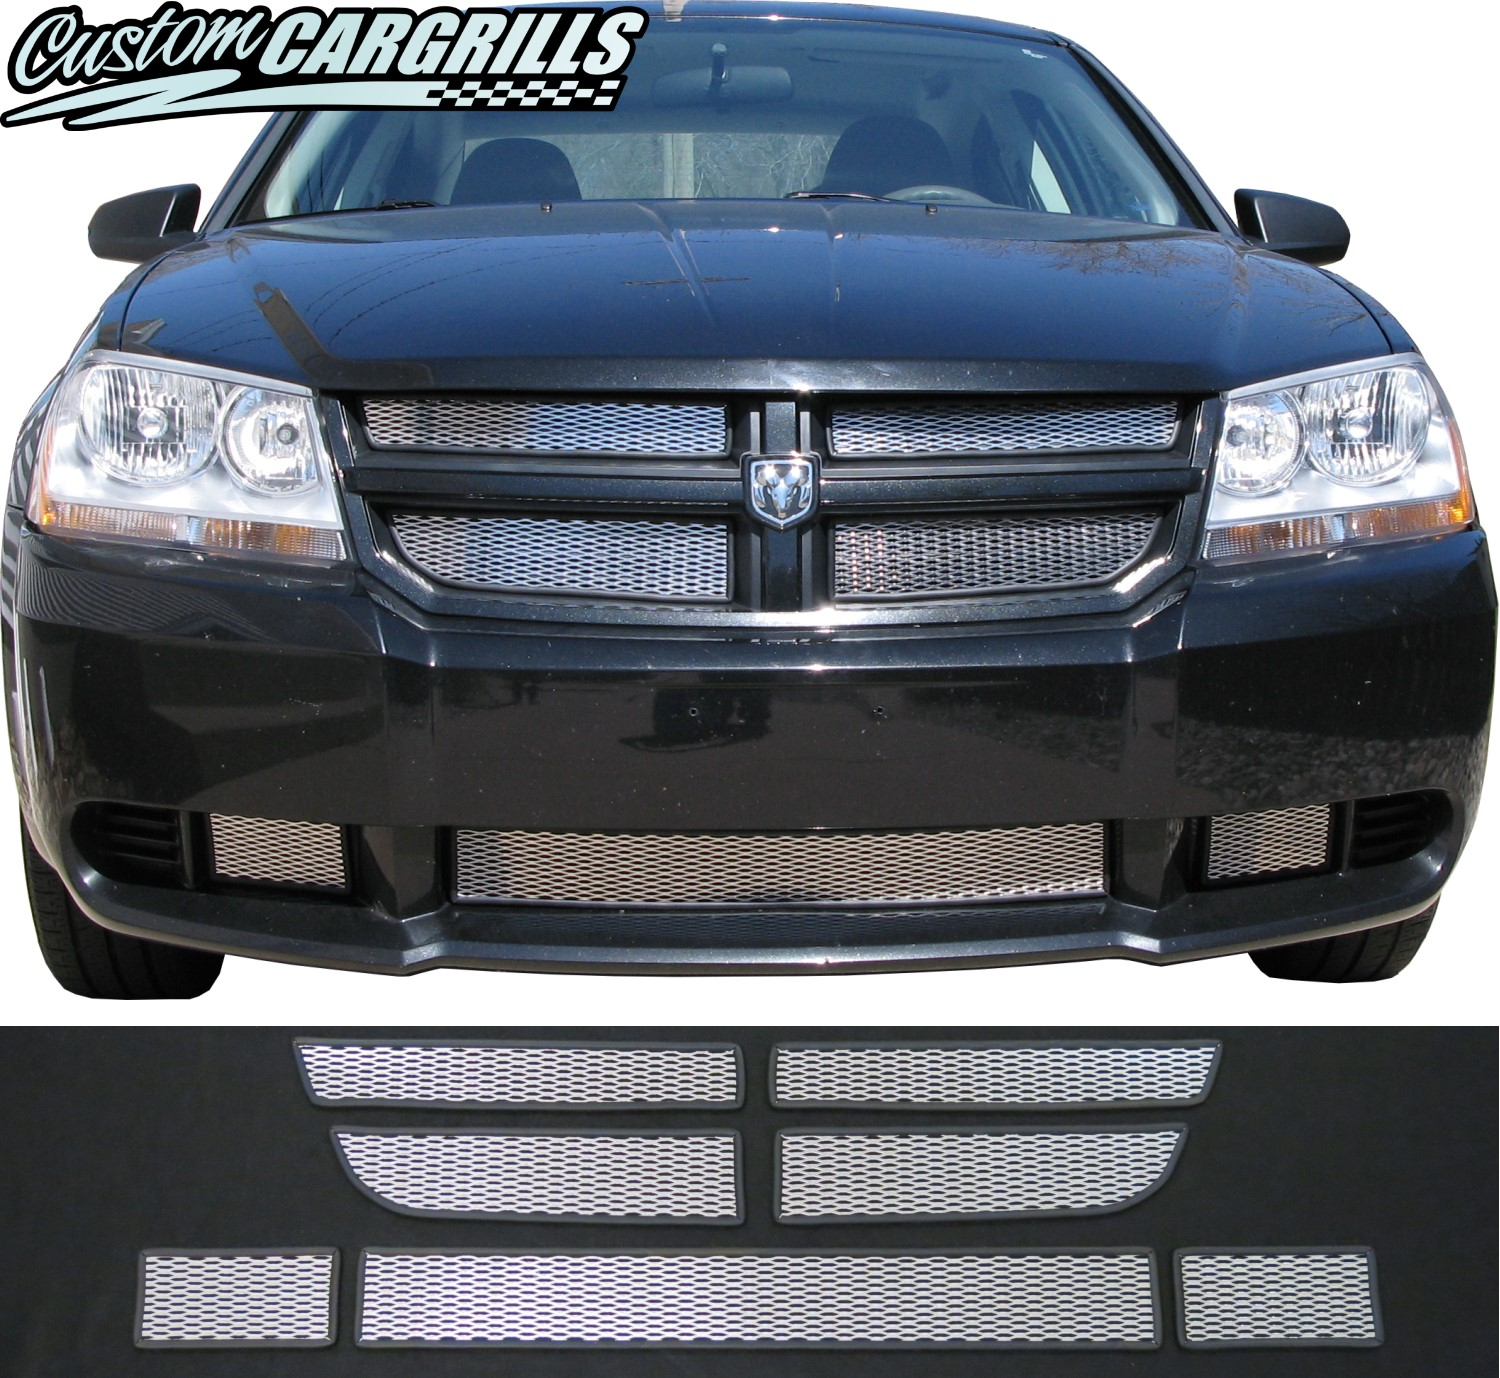 2007 - 2010 Dodge Avenger Mesh Grill Kit